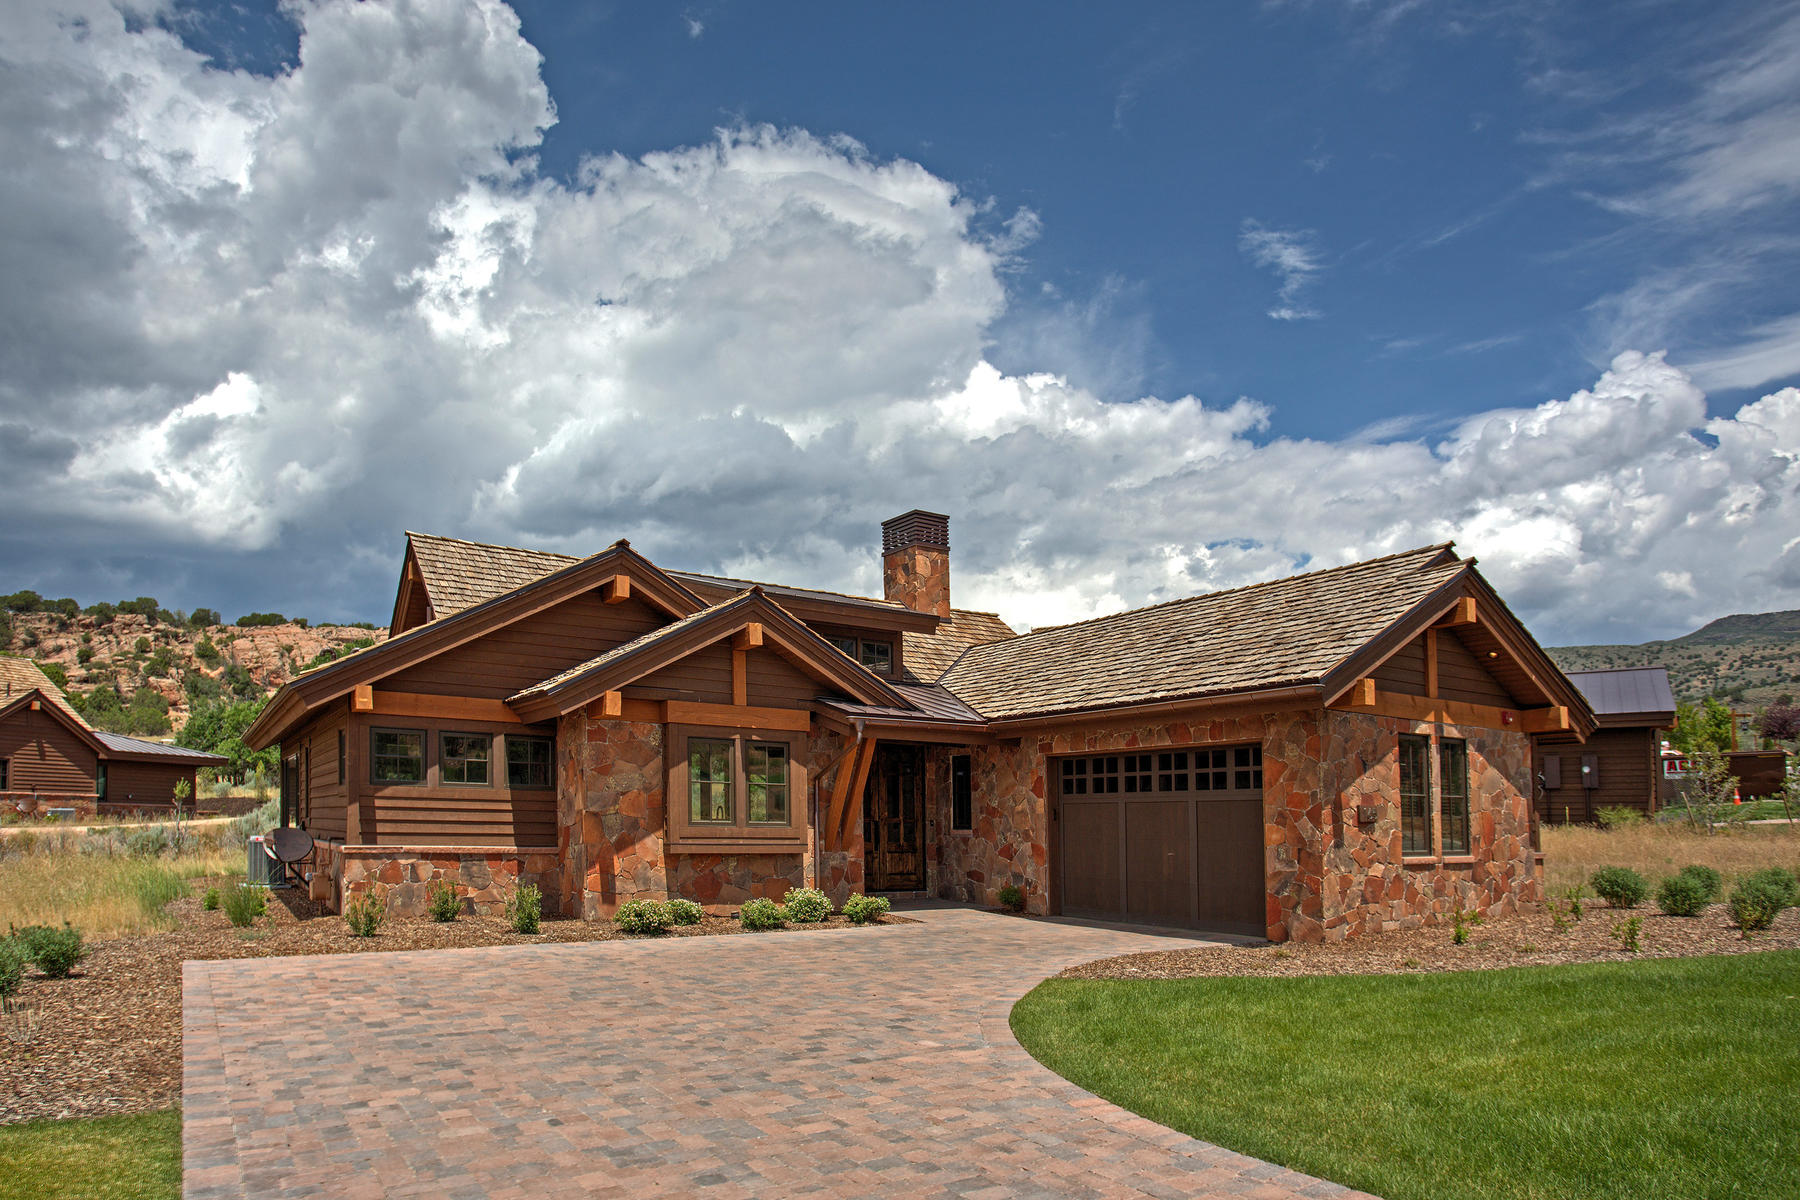 Casa Unifamiliar por un Venta en A sophisticated golf retreat among the junipers and red rocks 165 N Club Cabins Ct. #4 Heber City, Utah, 84032 Estados Unidos